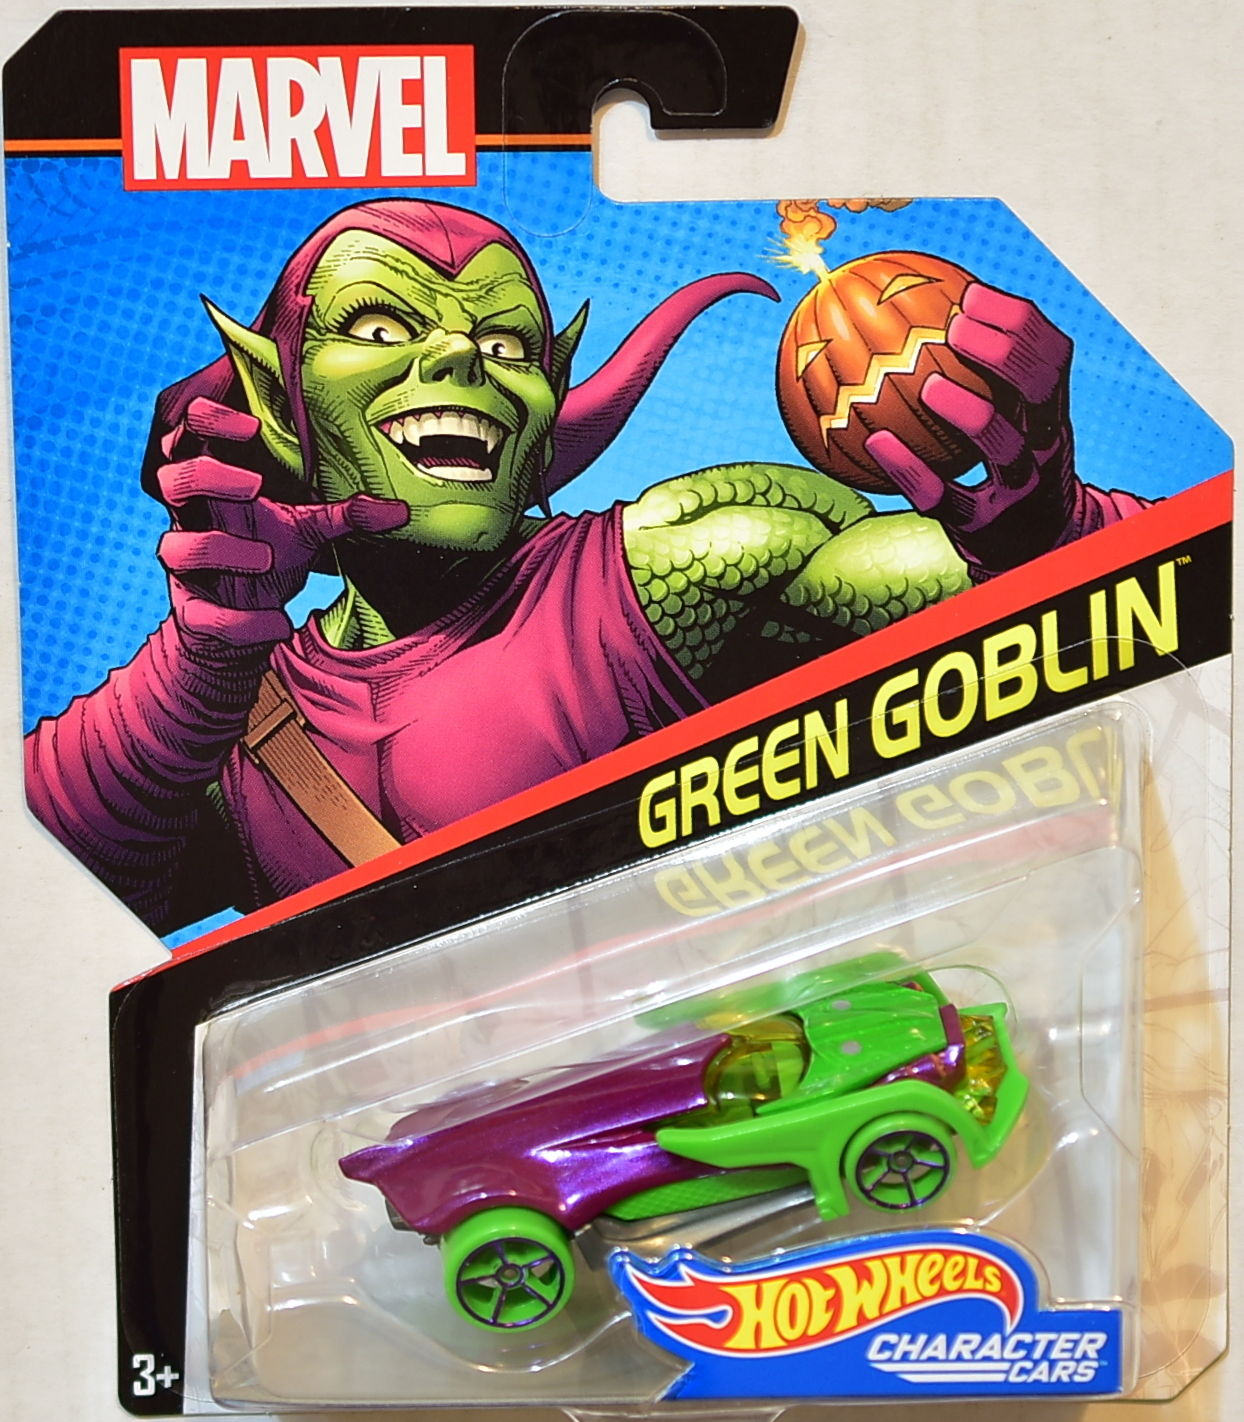 HOT WHEELS MARVEL CHARACTER CARS GREEN GOBLIN